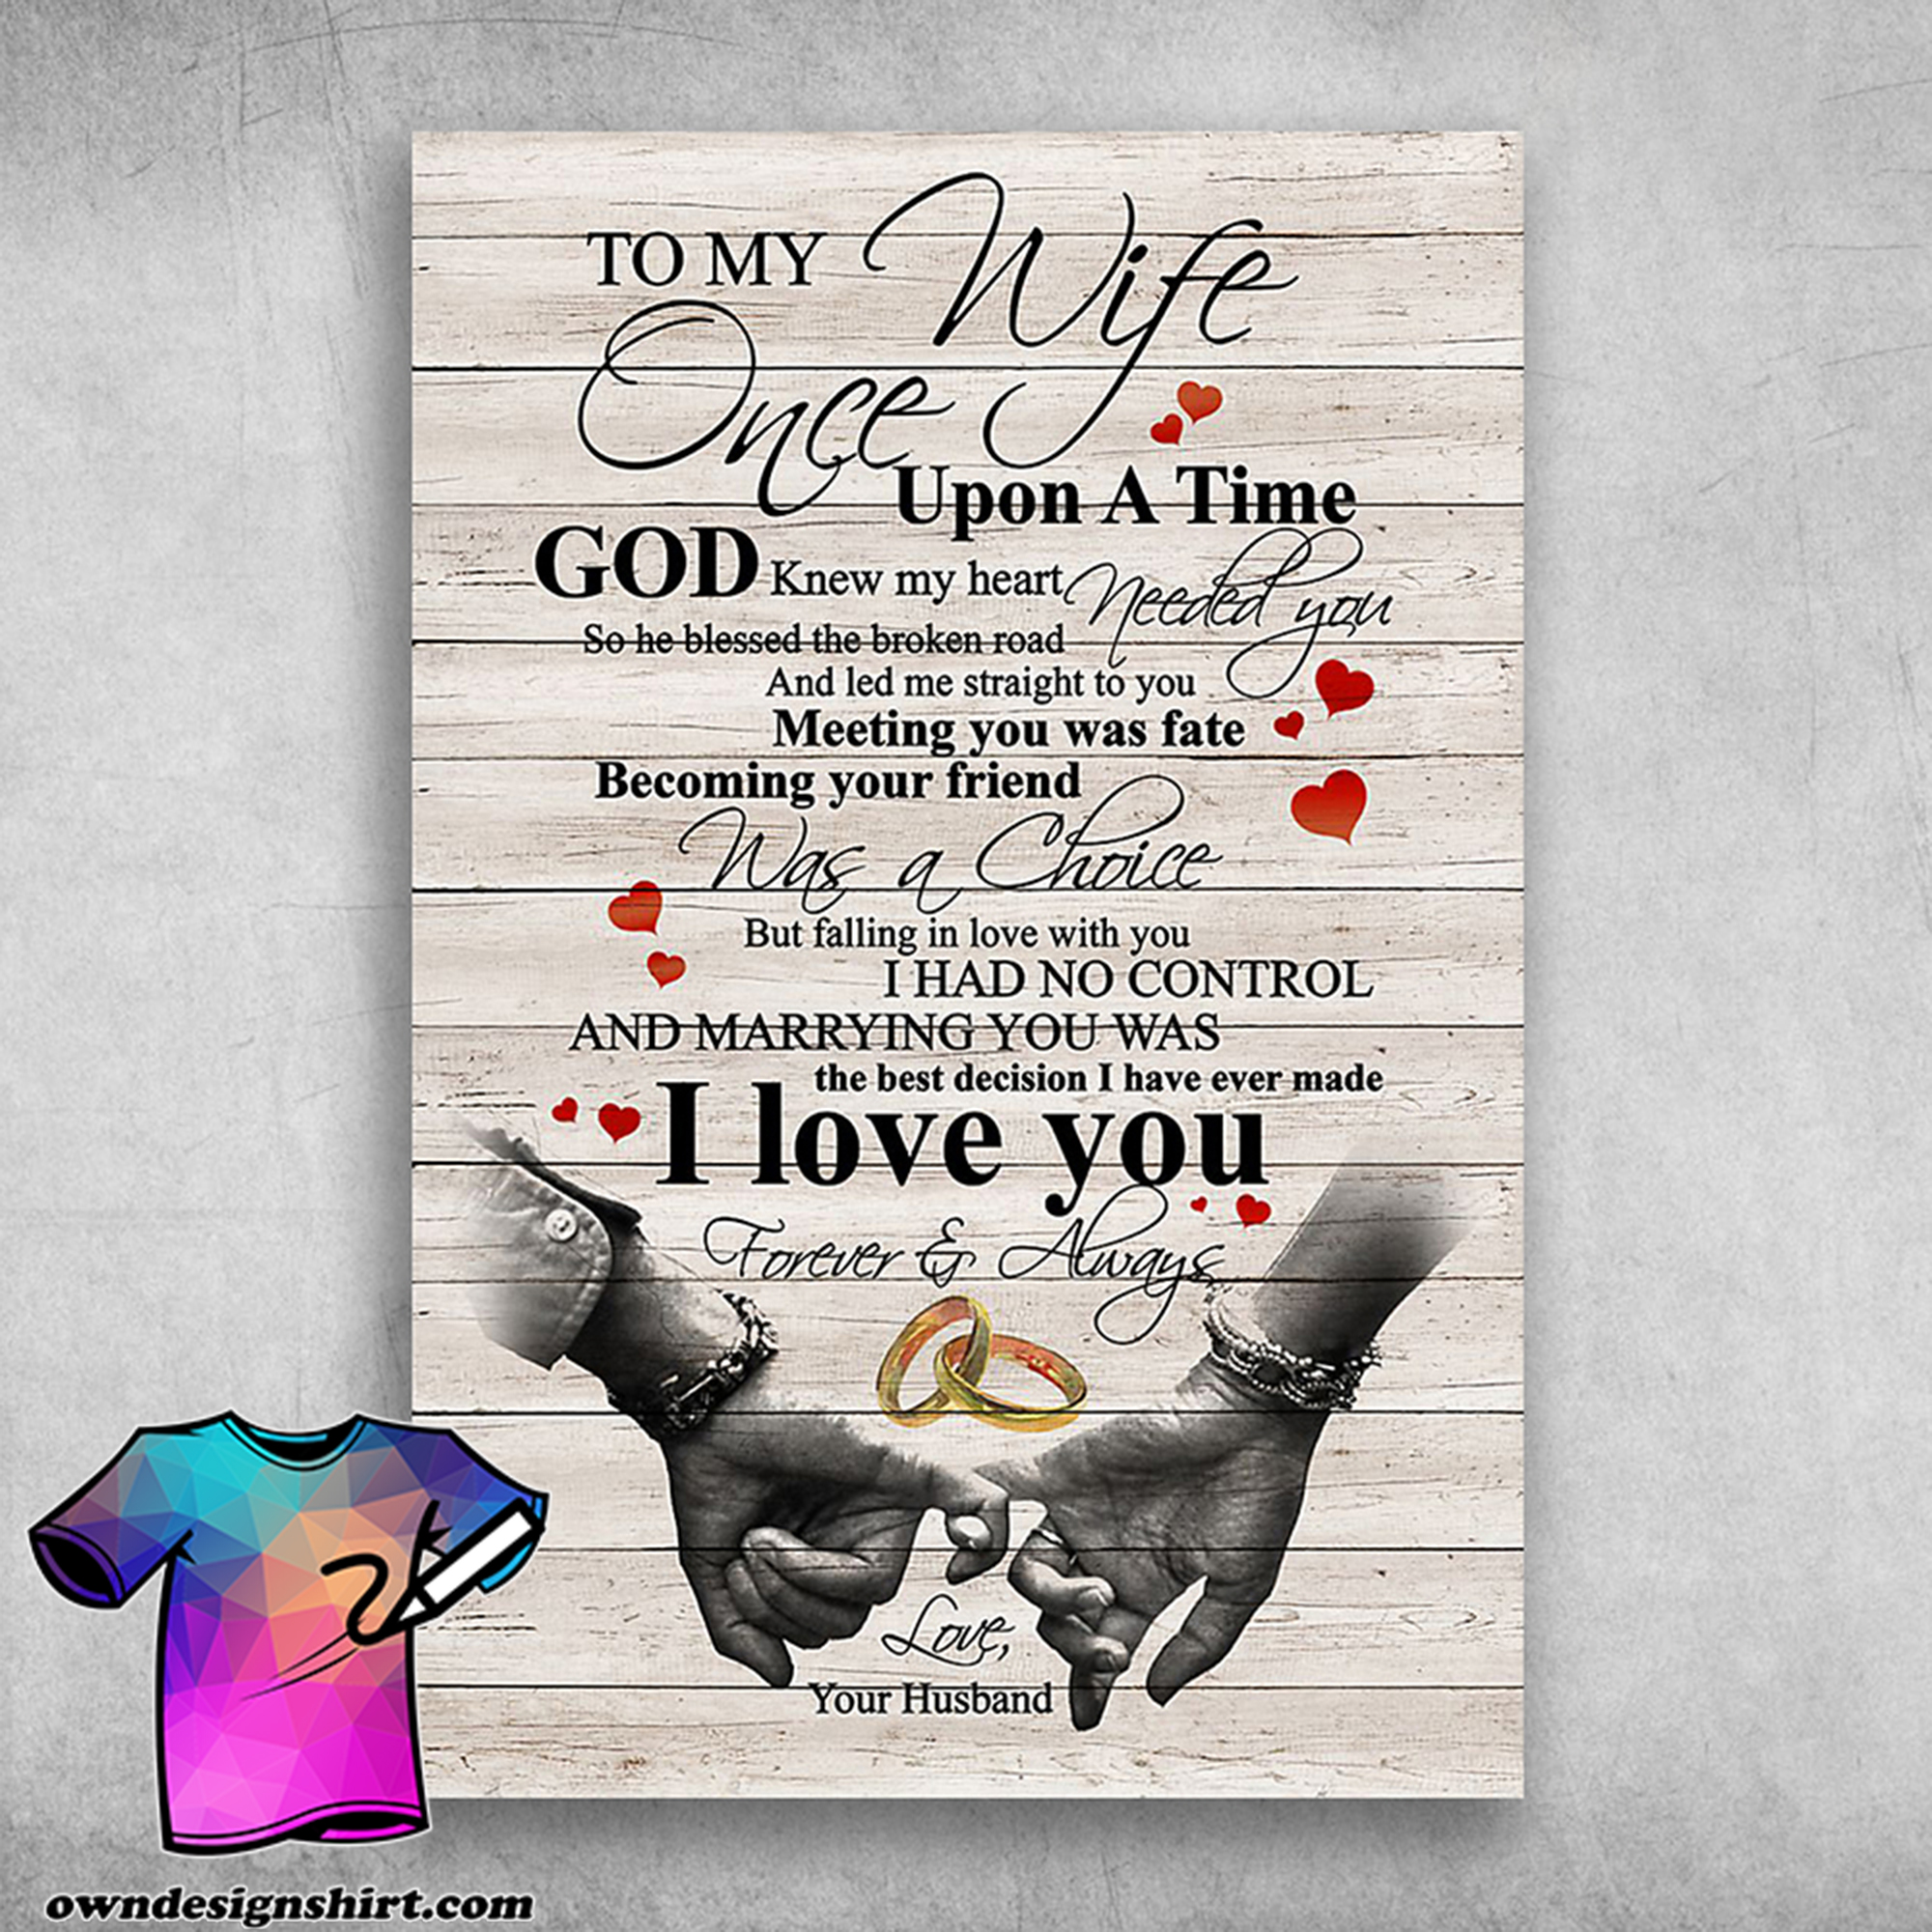 To my wife once upon a time god knew my heart needed you poster